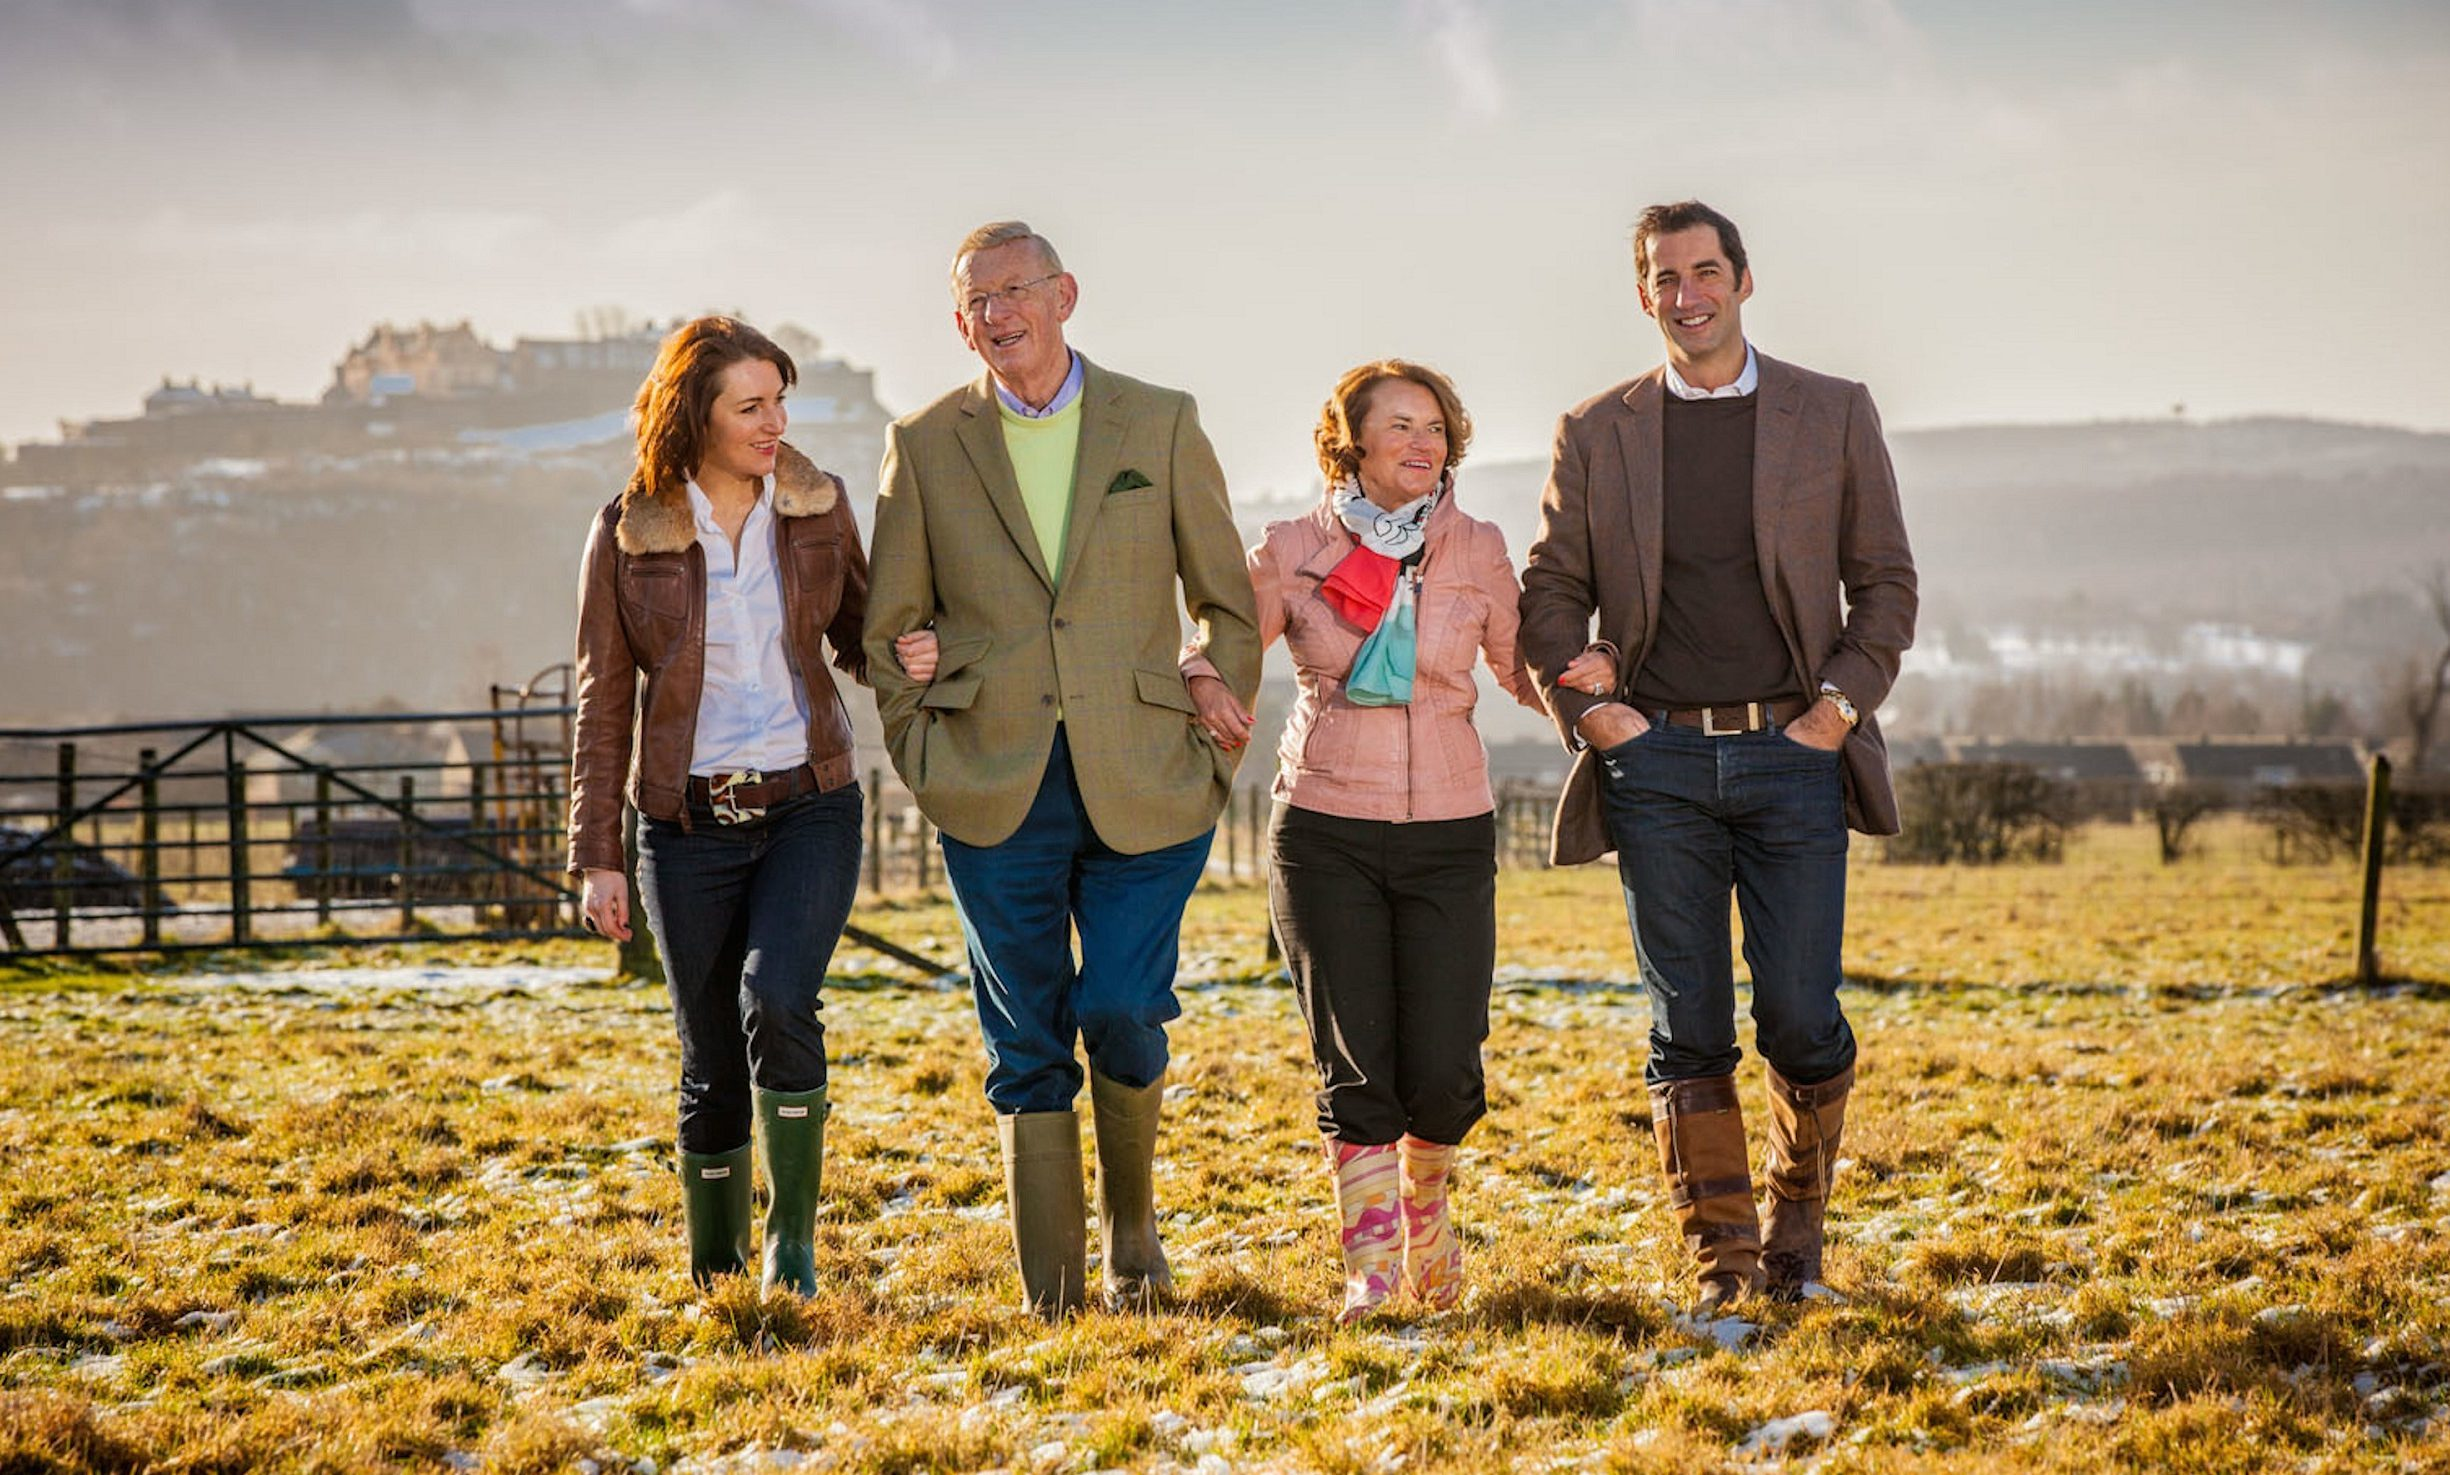 Members of the Graham's family business at the Airthrey Kerse Farm site.